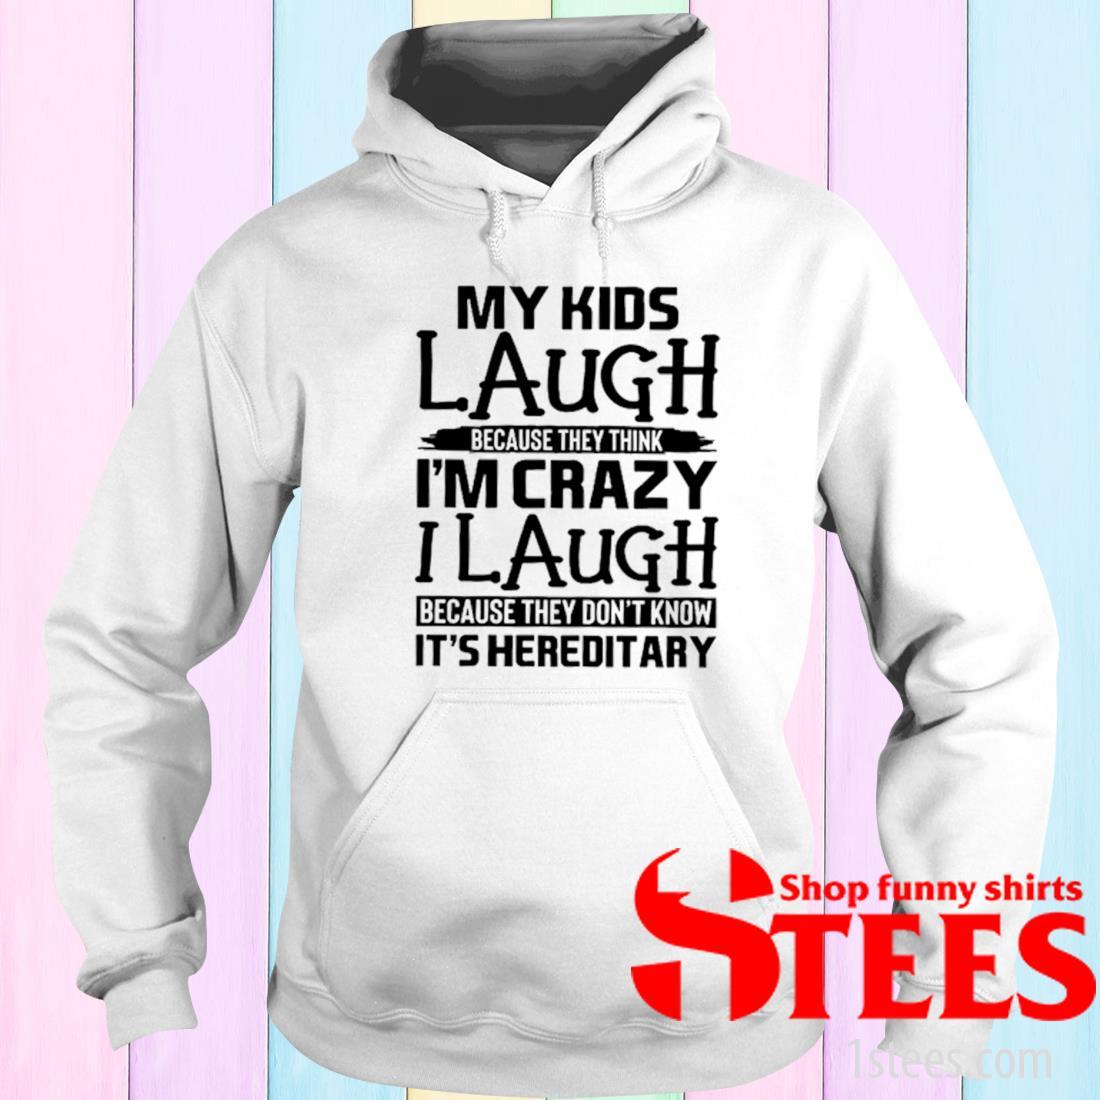 My Kids Laugh Because They Think I'm Crazy I Laugh Because They Don't Know It's Hereditary Shirt hoodie